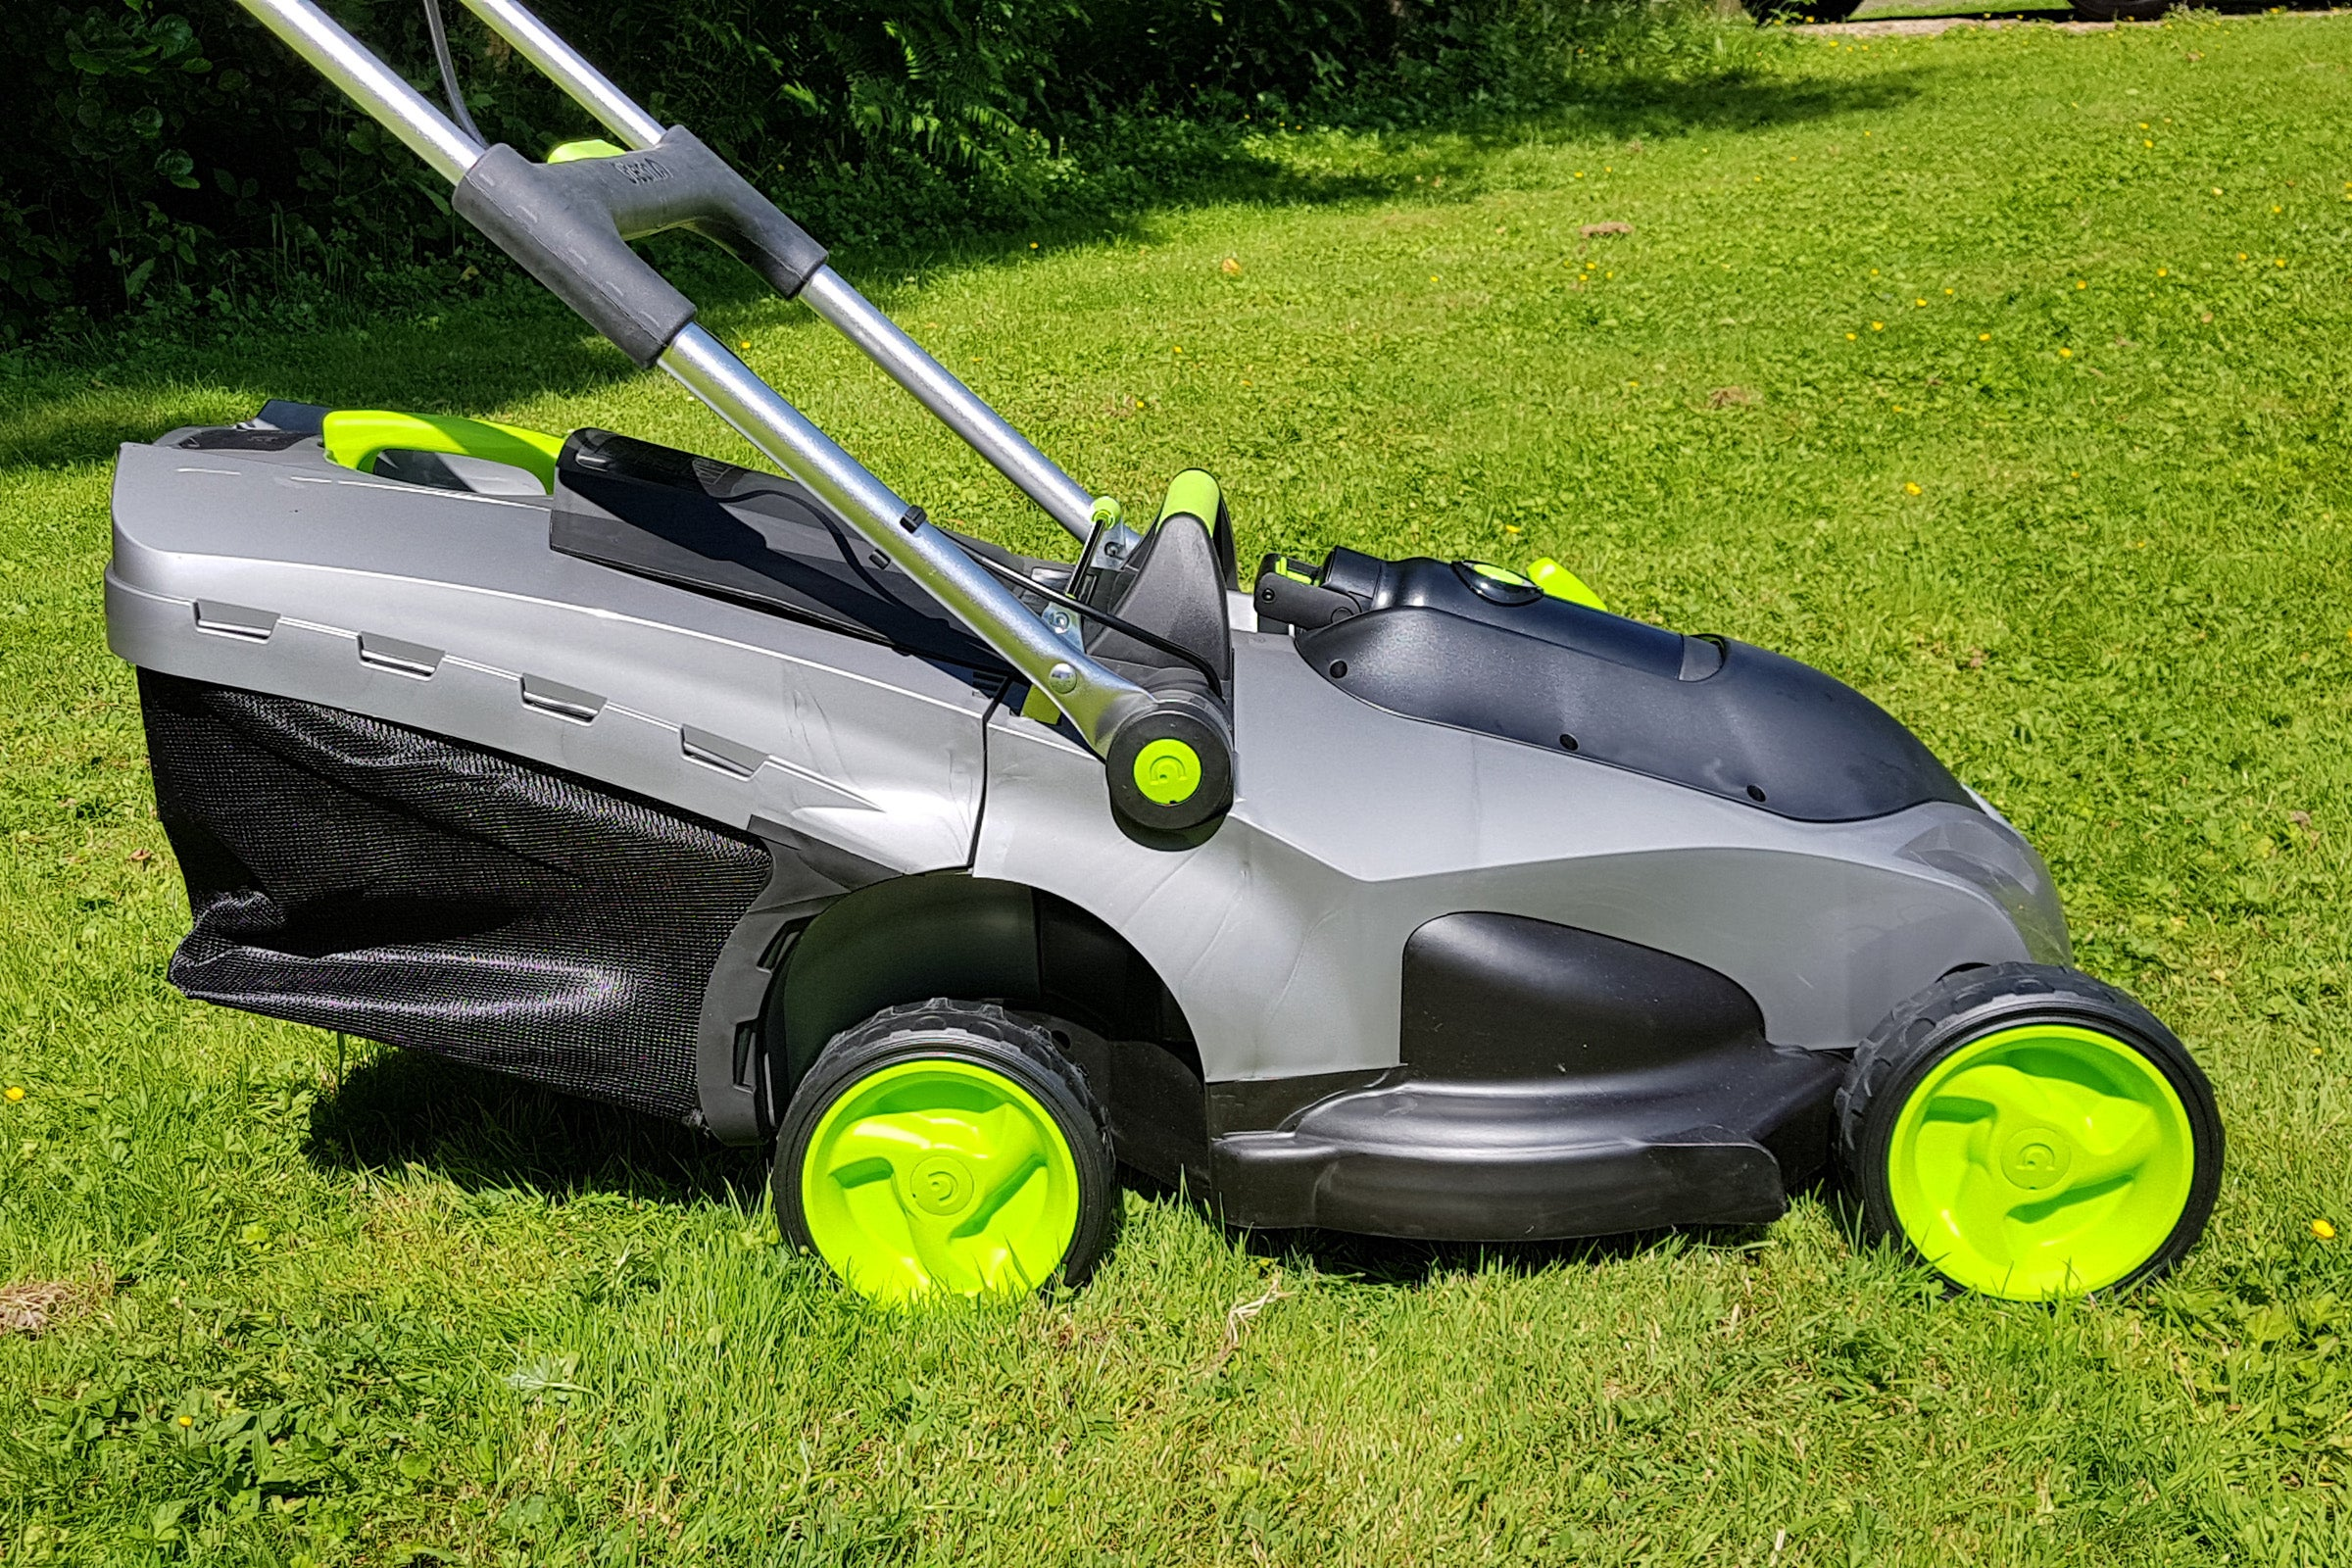 Gtech Falcon Cordless Lawnmower Review | Trusted Reviews